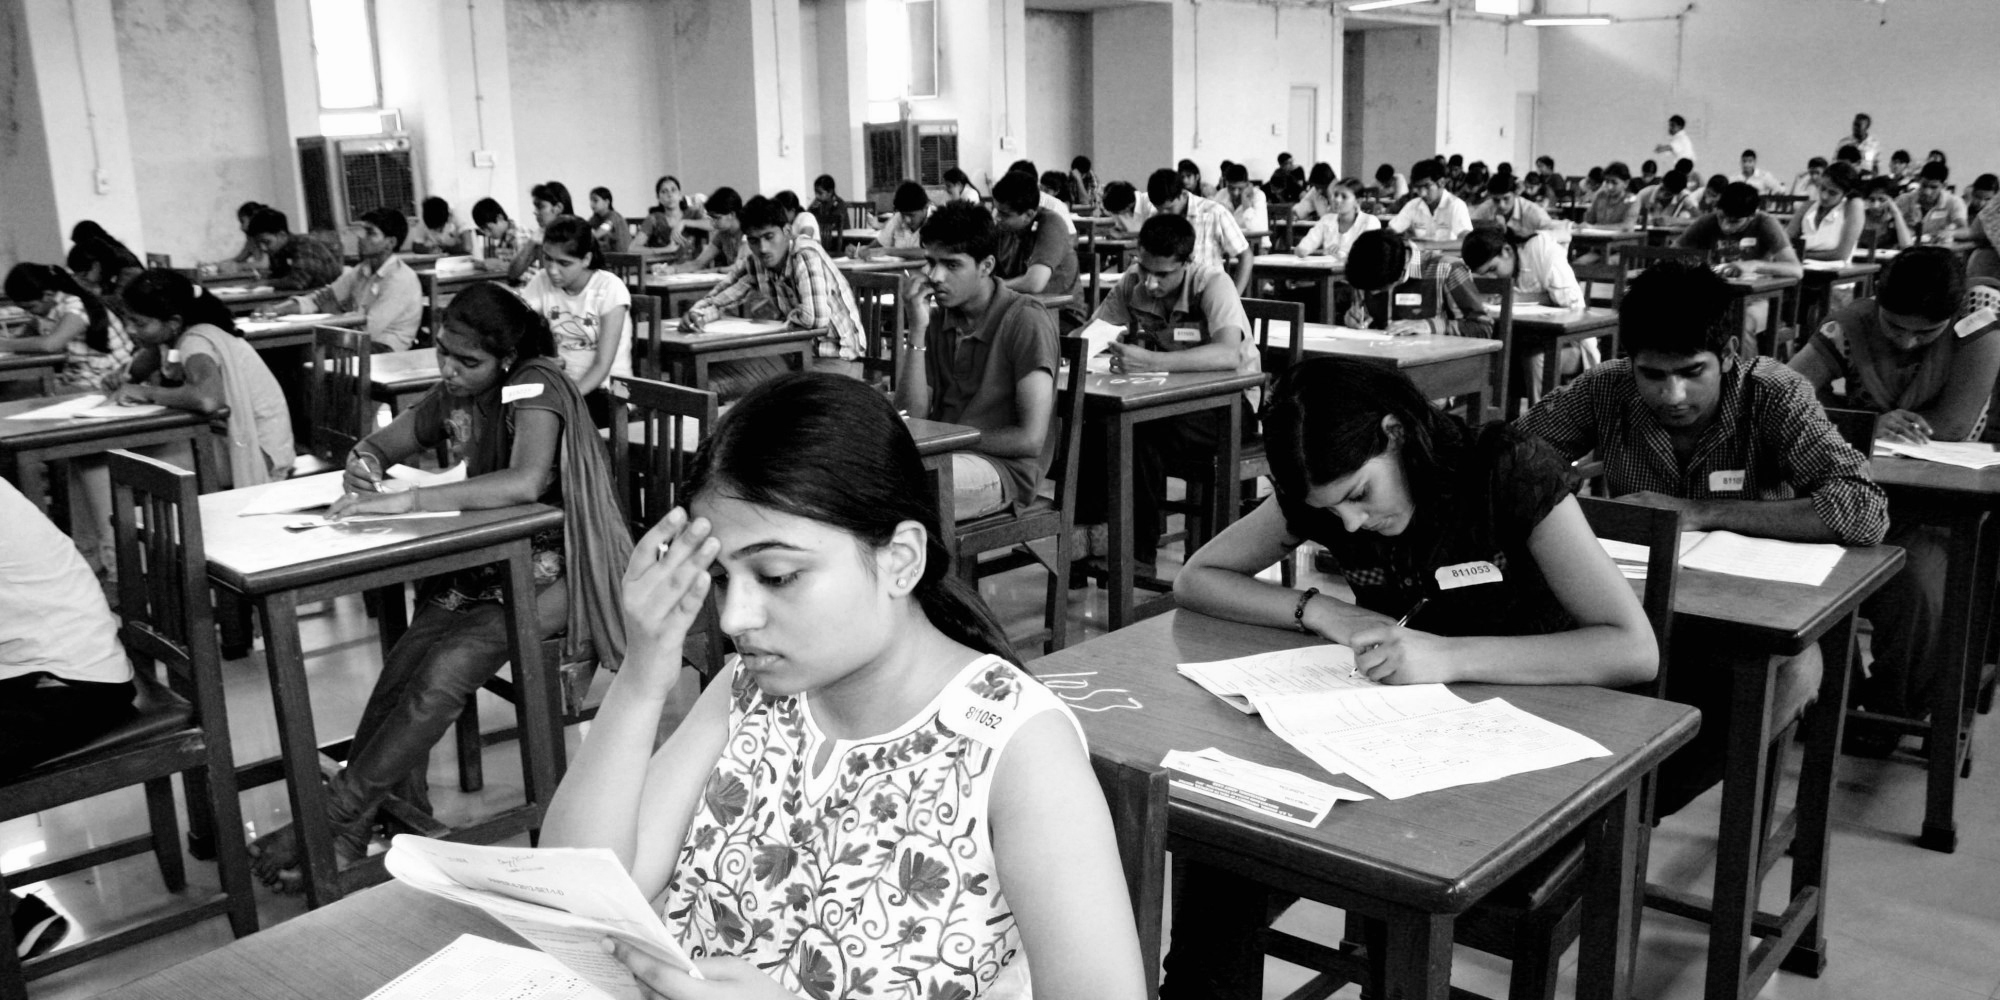 CBSE UGC NET 2017 results will be declared soon at cbsenet.nic.in